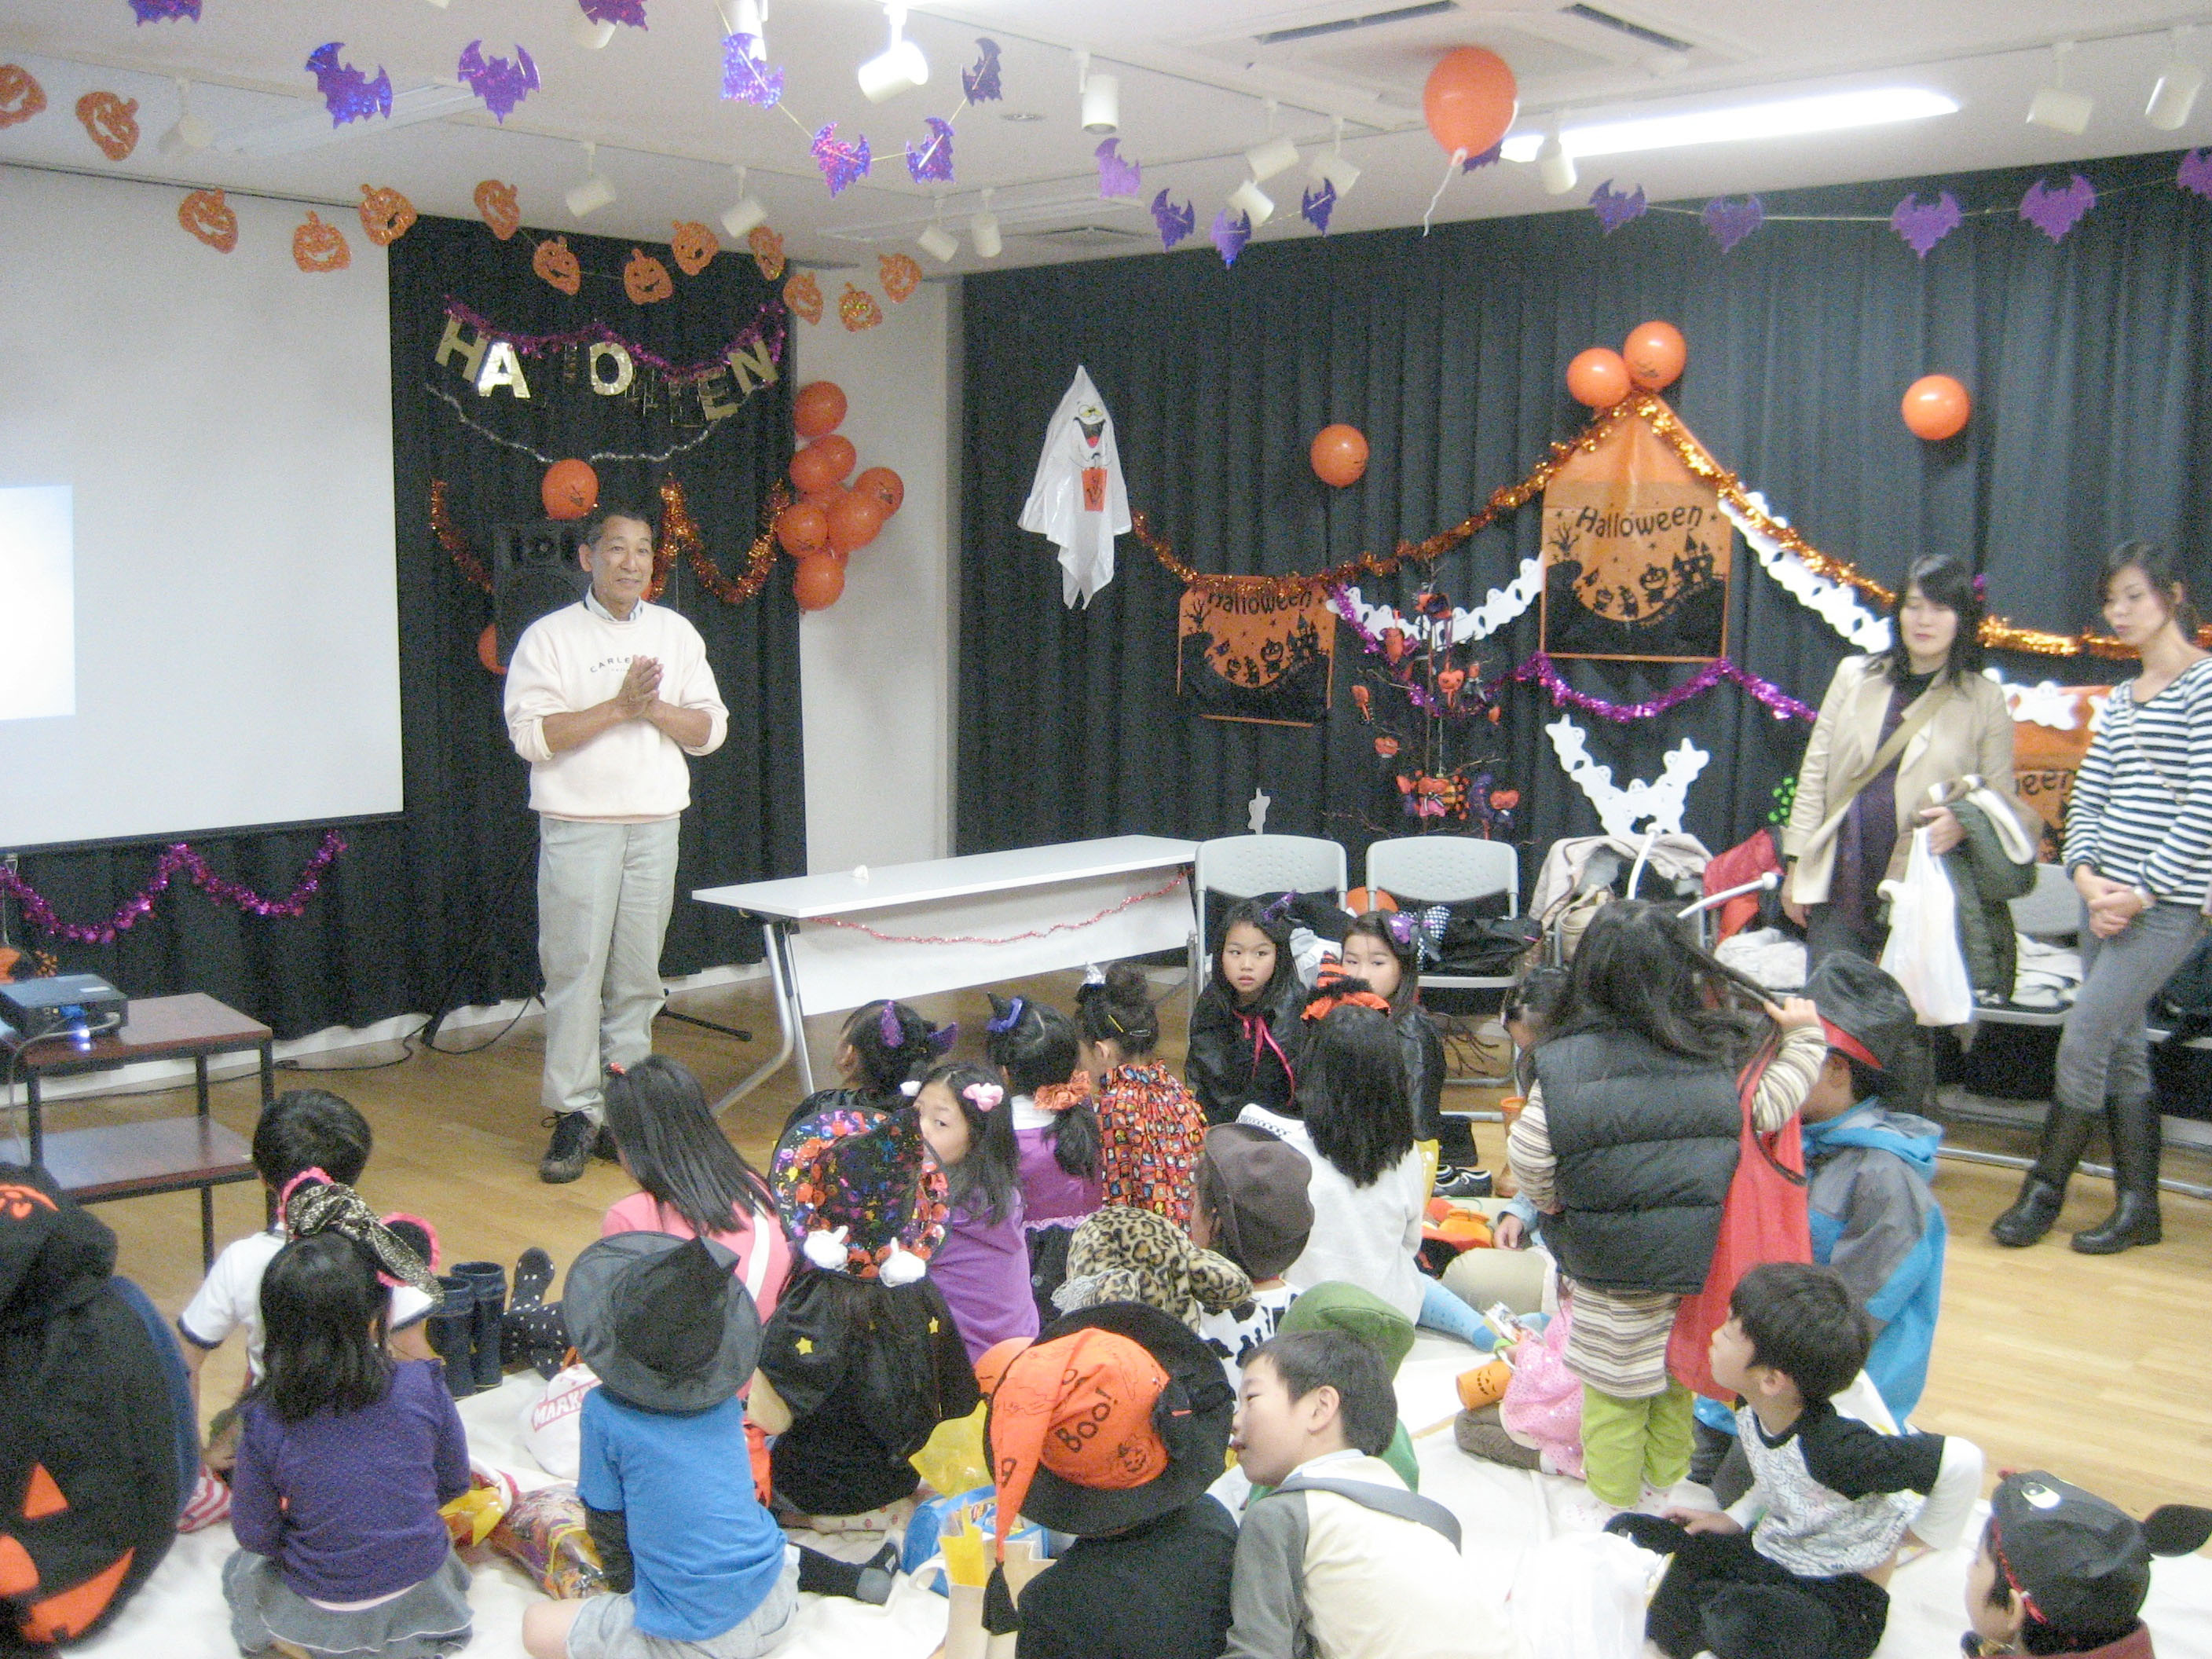 Spooky fun: Kids enjoy Noge Halloween.